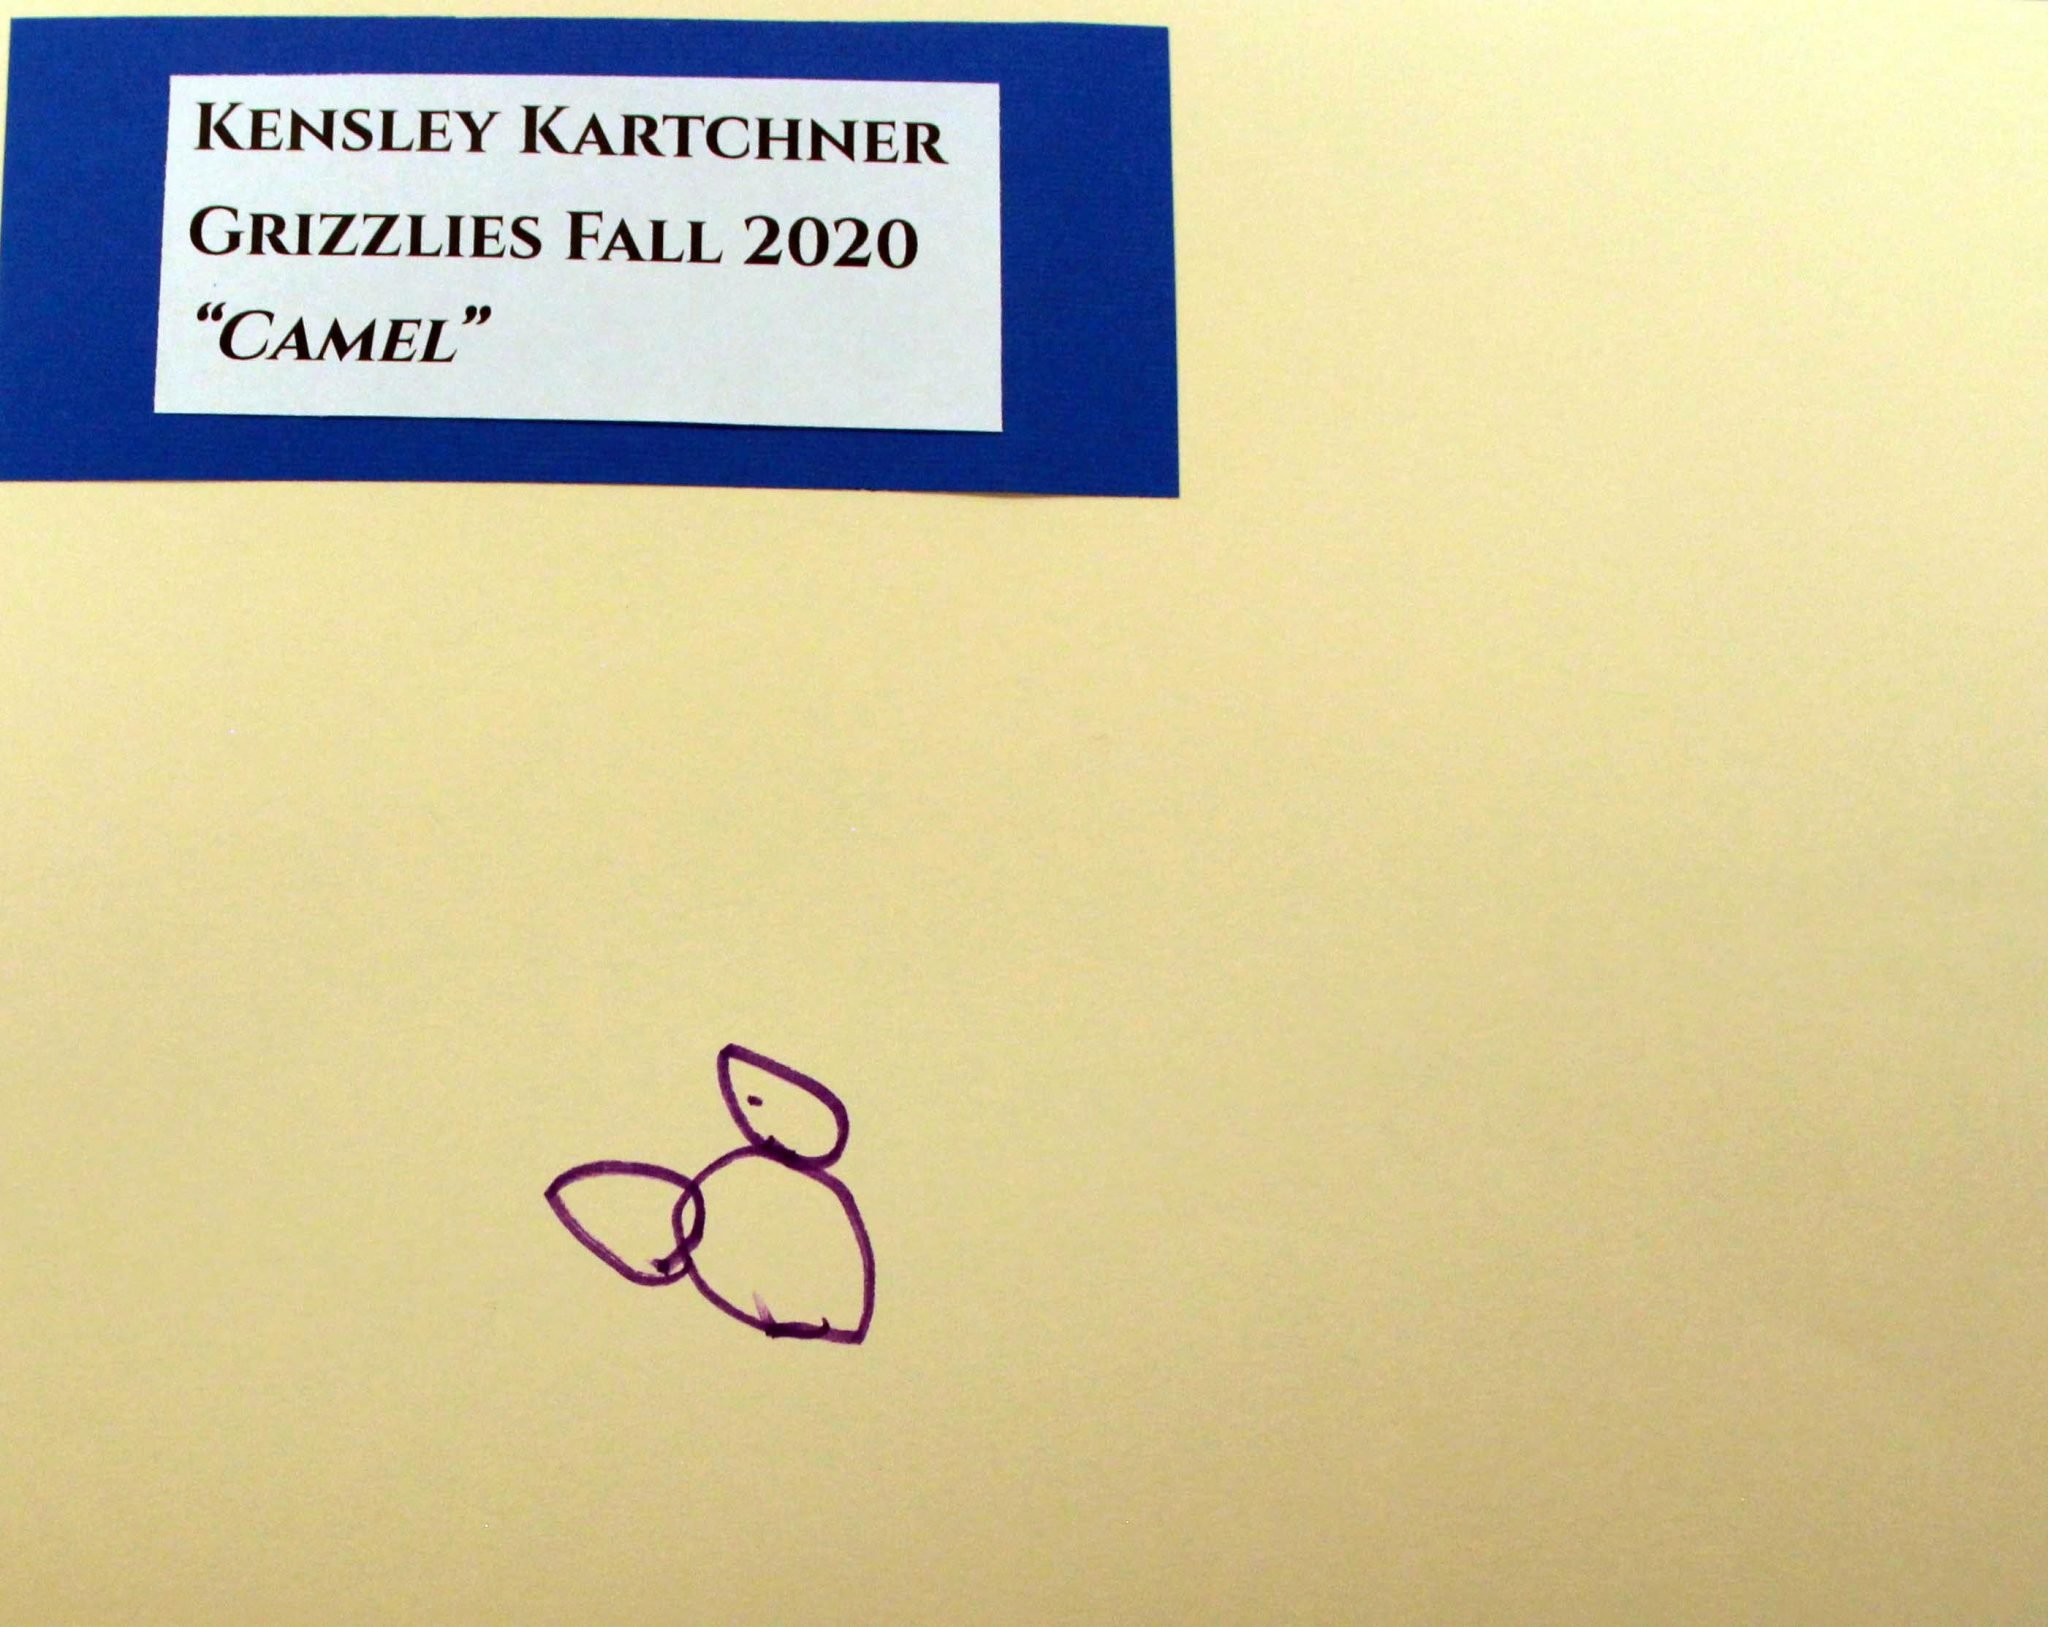 Kensley Kartchner, of Grizzlies group, drawing, Fall 2020